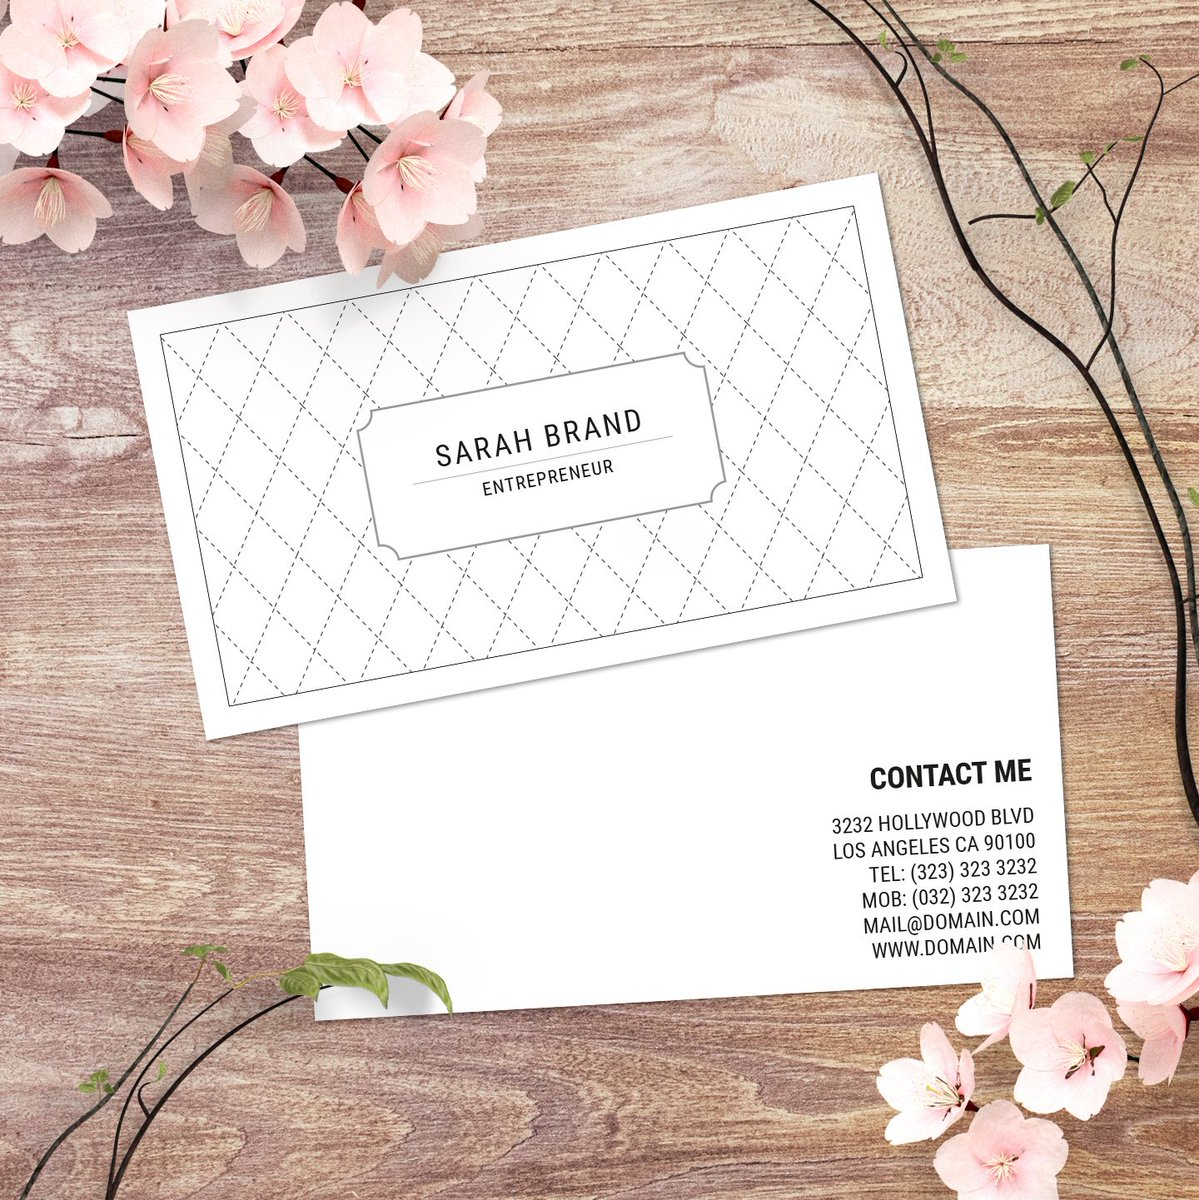 When you love #blackandwhite design you get a timeless black and white #businesscard  to represent yourself or your business. #businesscards #patterns #psdtemplate #templates